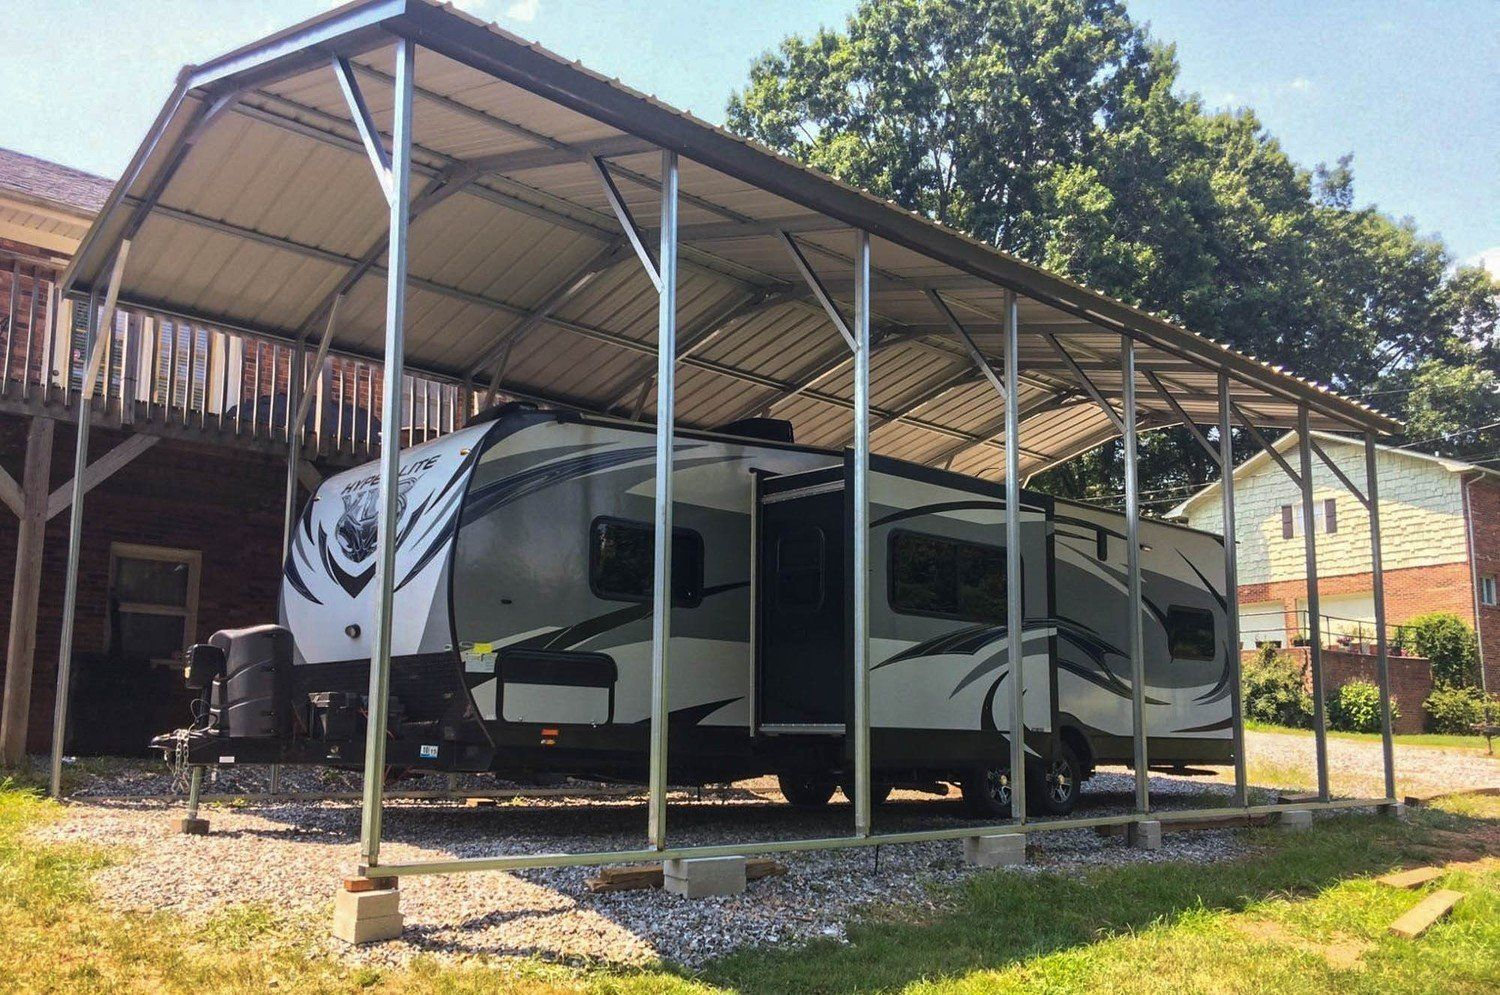 Rv Carport Installed 12 X 36 X 12 With Our Strongest Vertical Snow Roof 12g Frame And A 20 Year Warranty 8211 Steel Carports Carport Window Installation